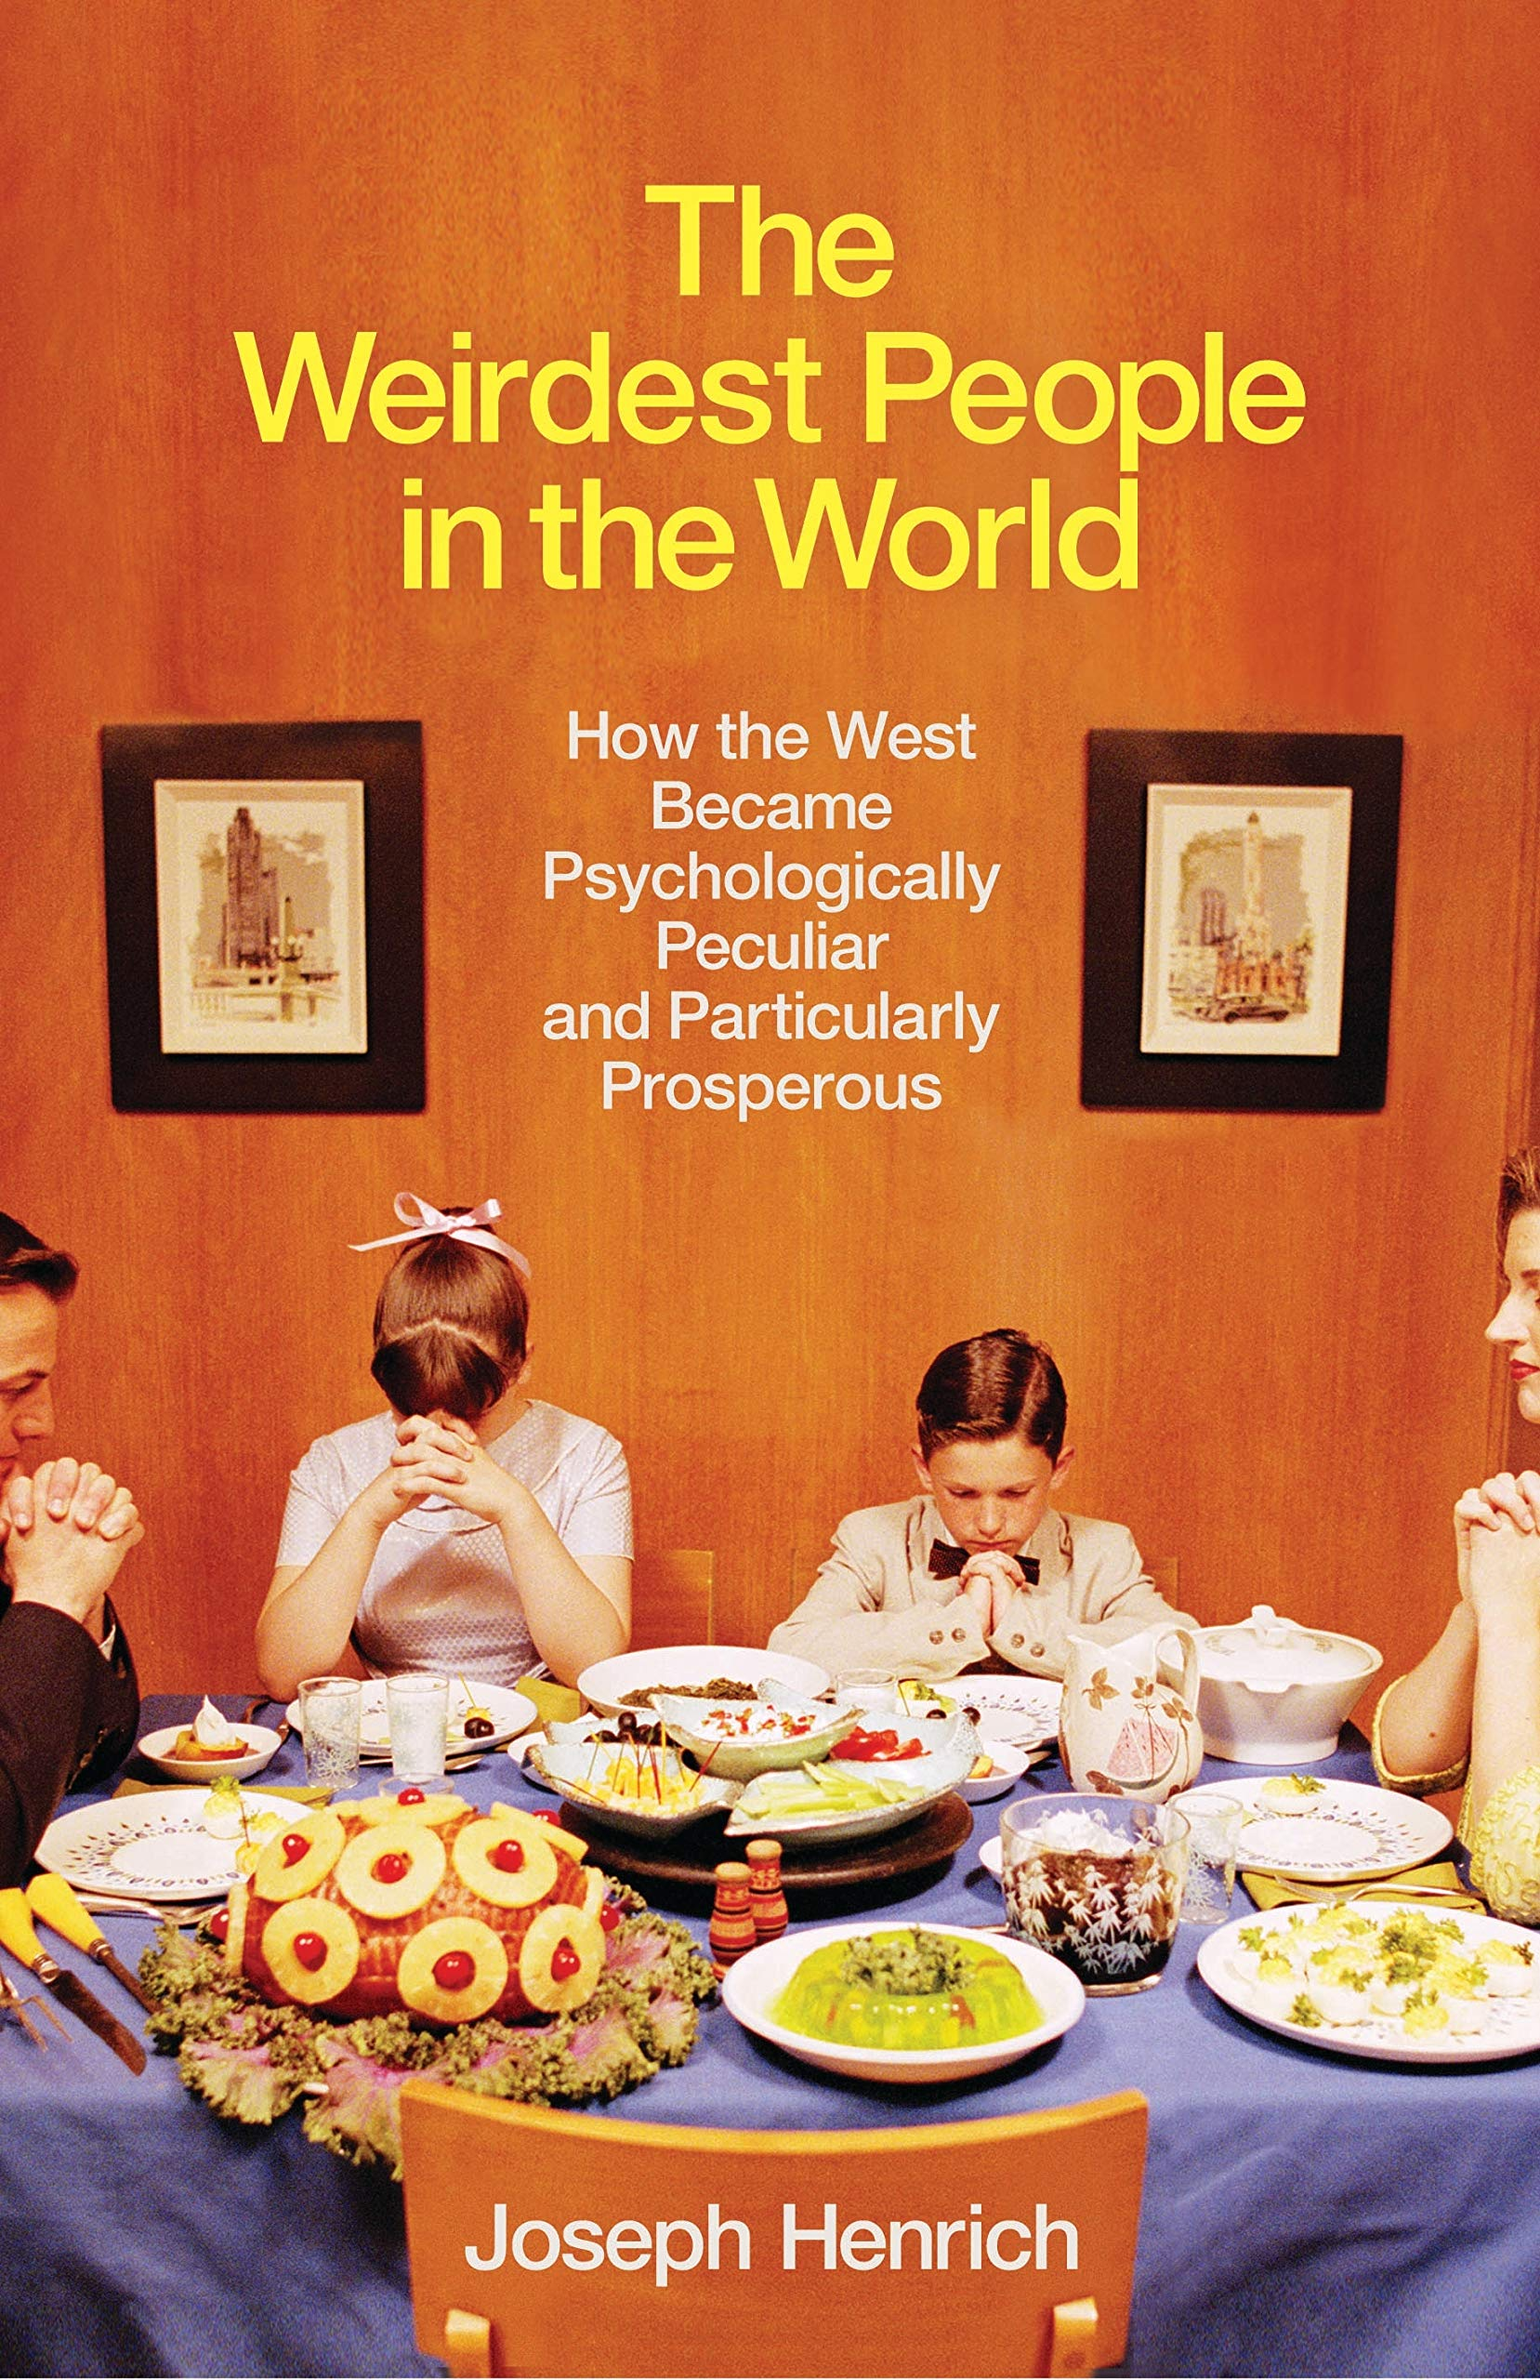 The Weirdest People in the World by Joseph Henrick